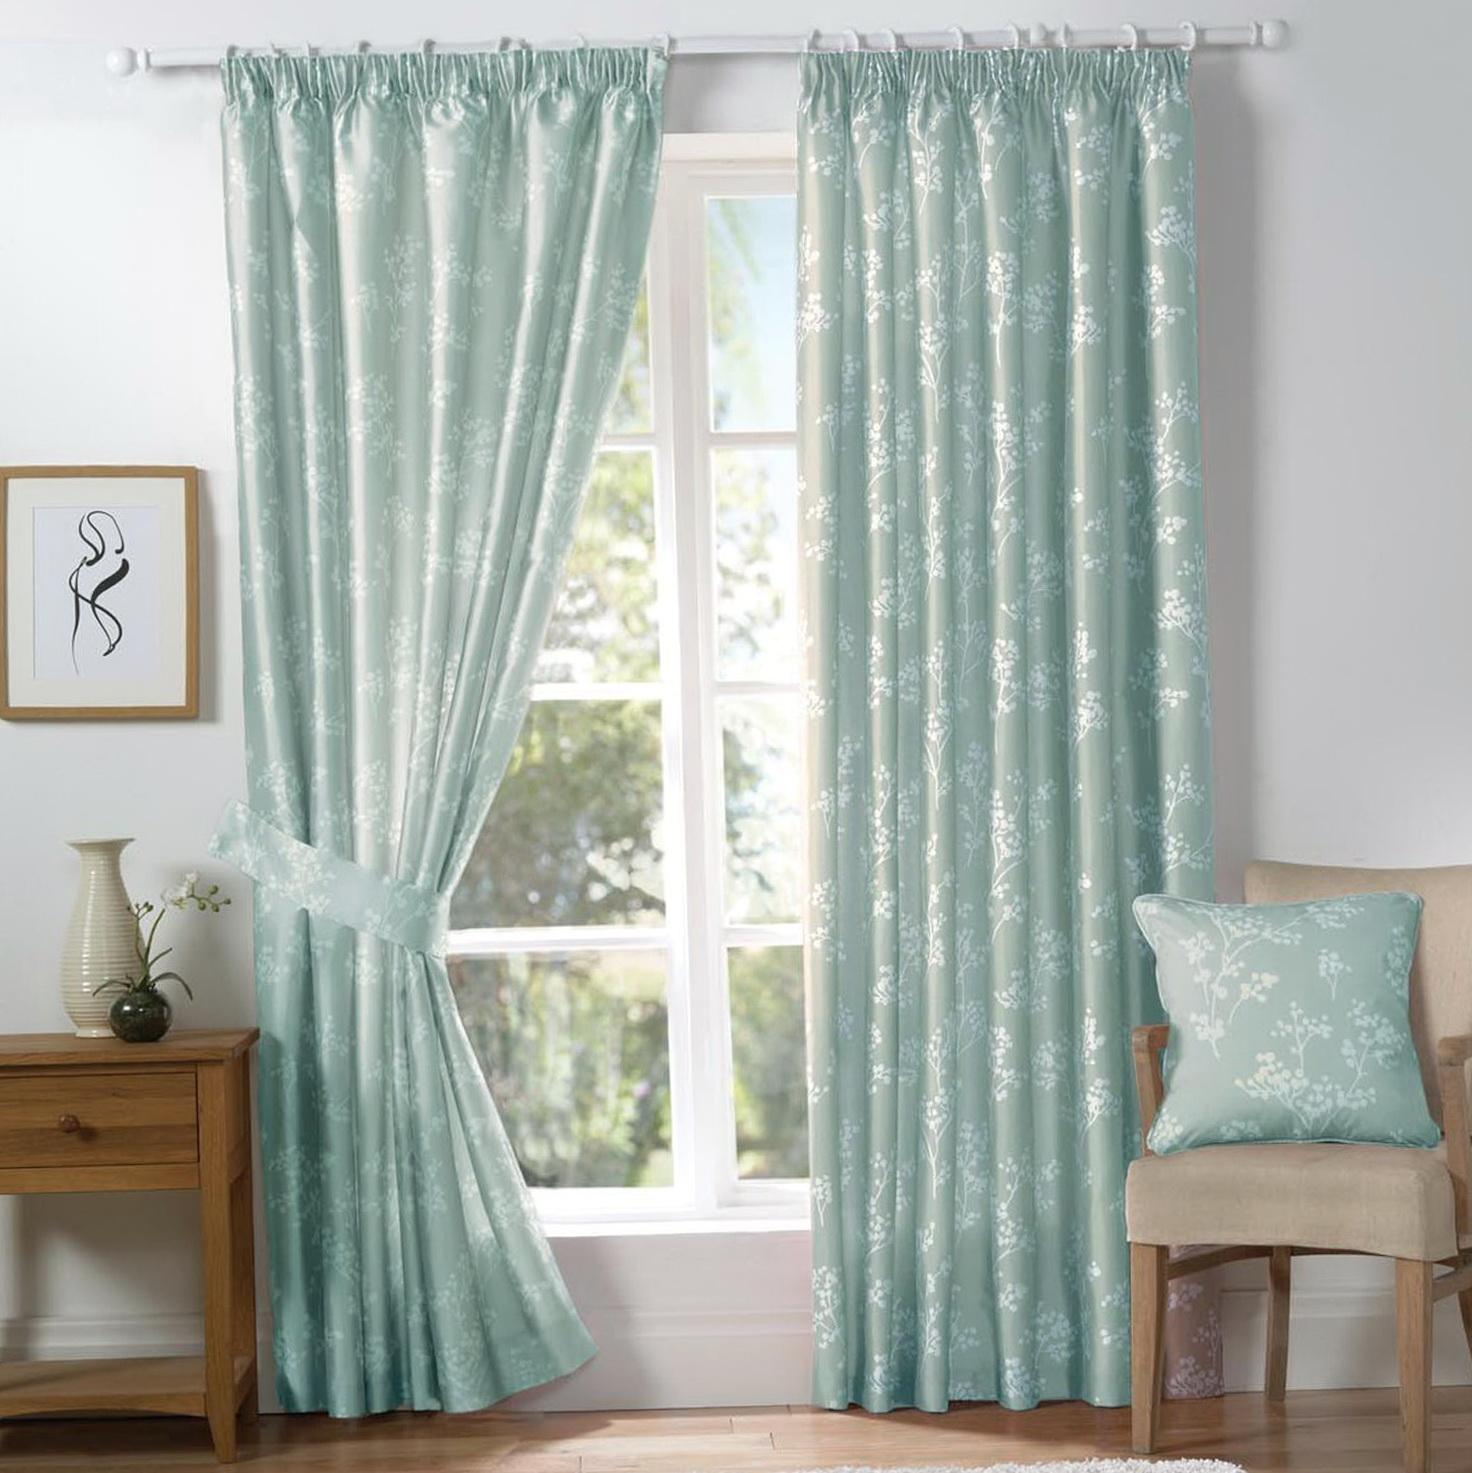 Duck Egg Blue Bedroom Curtains